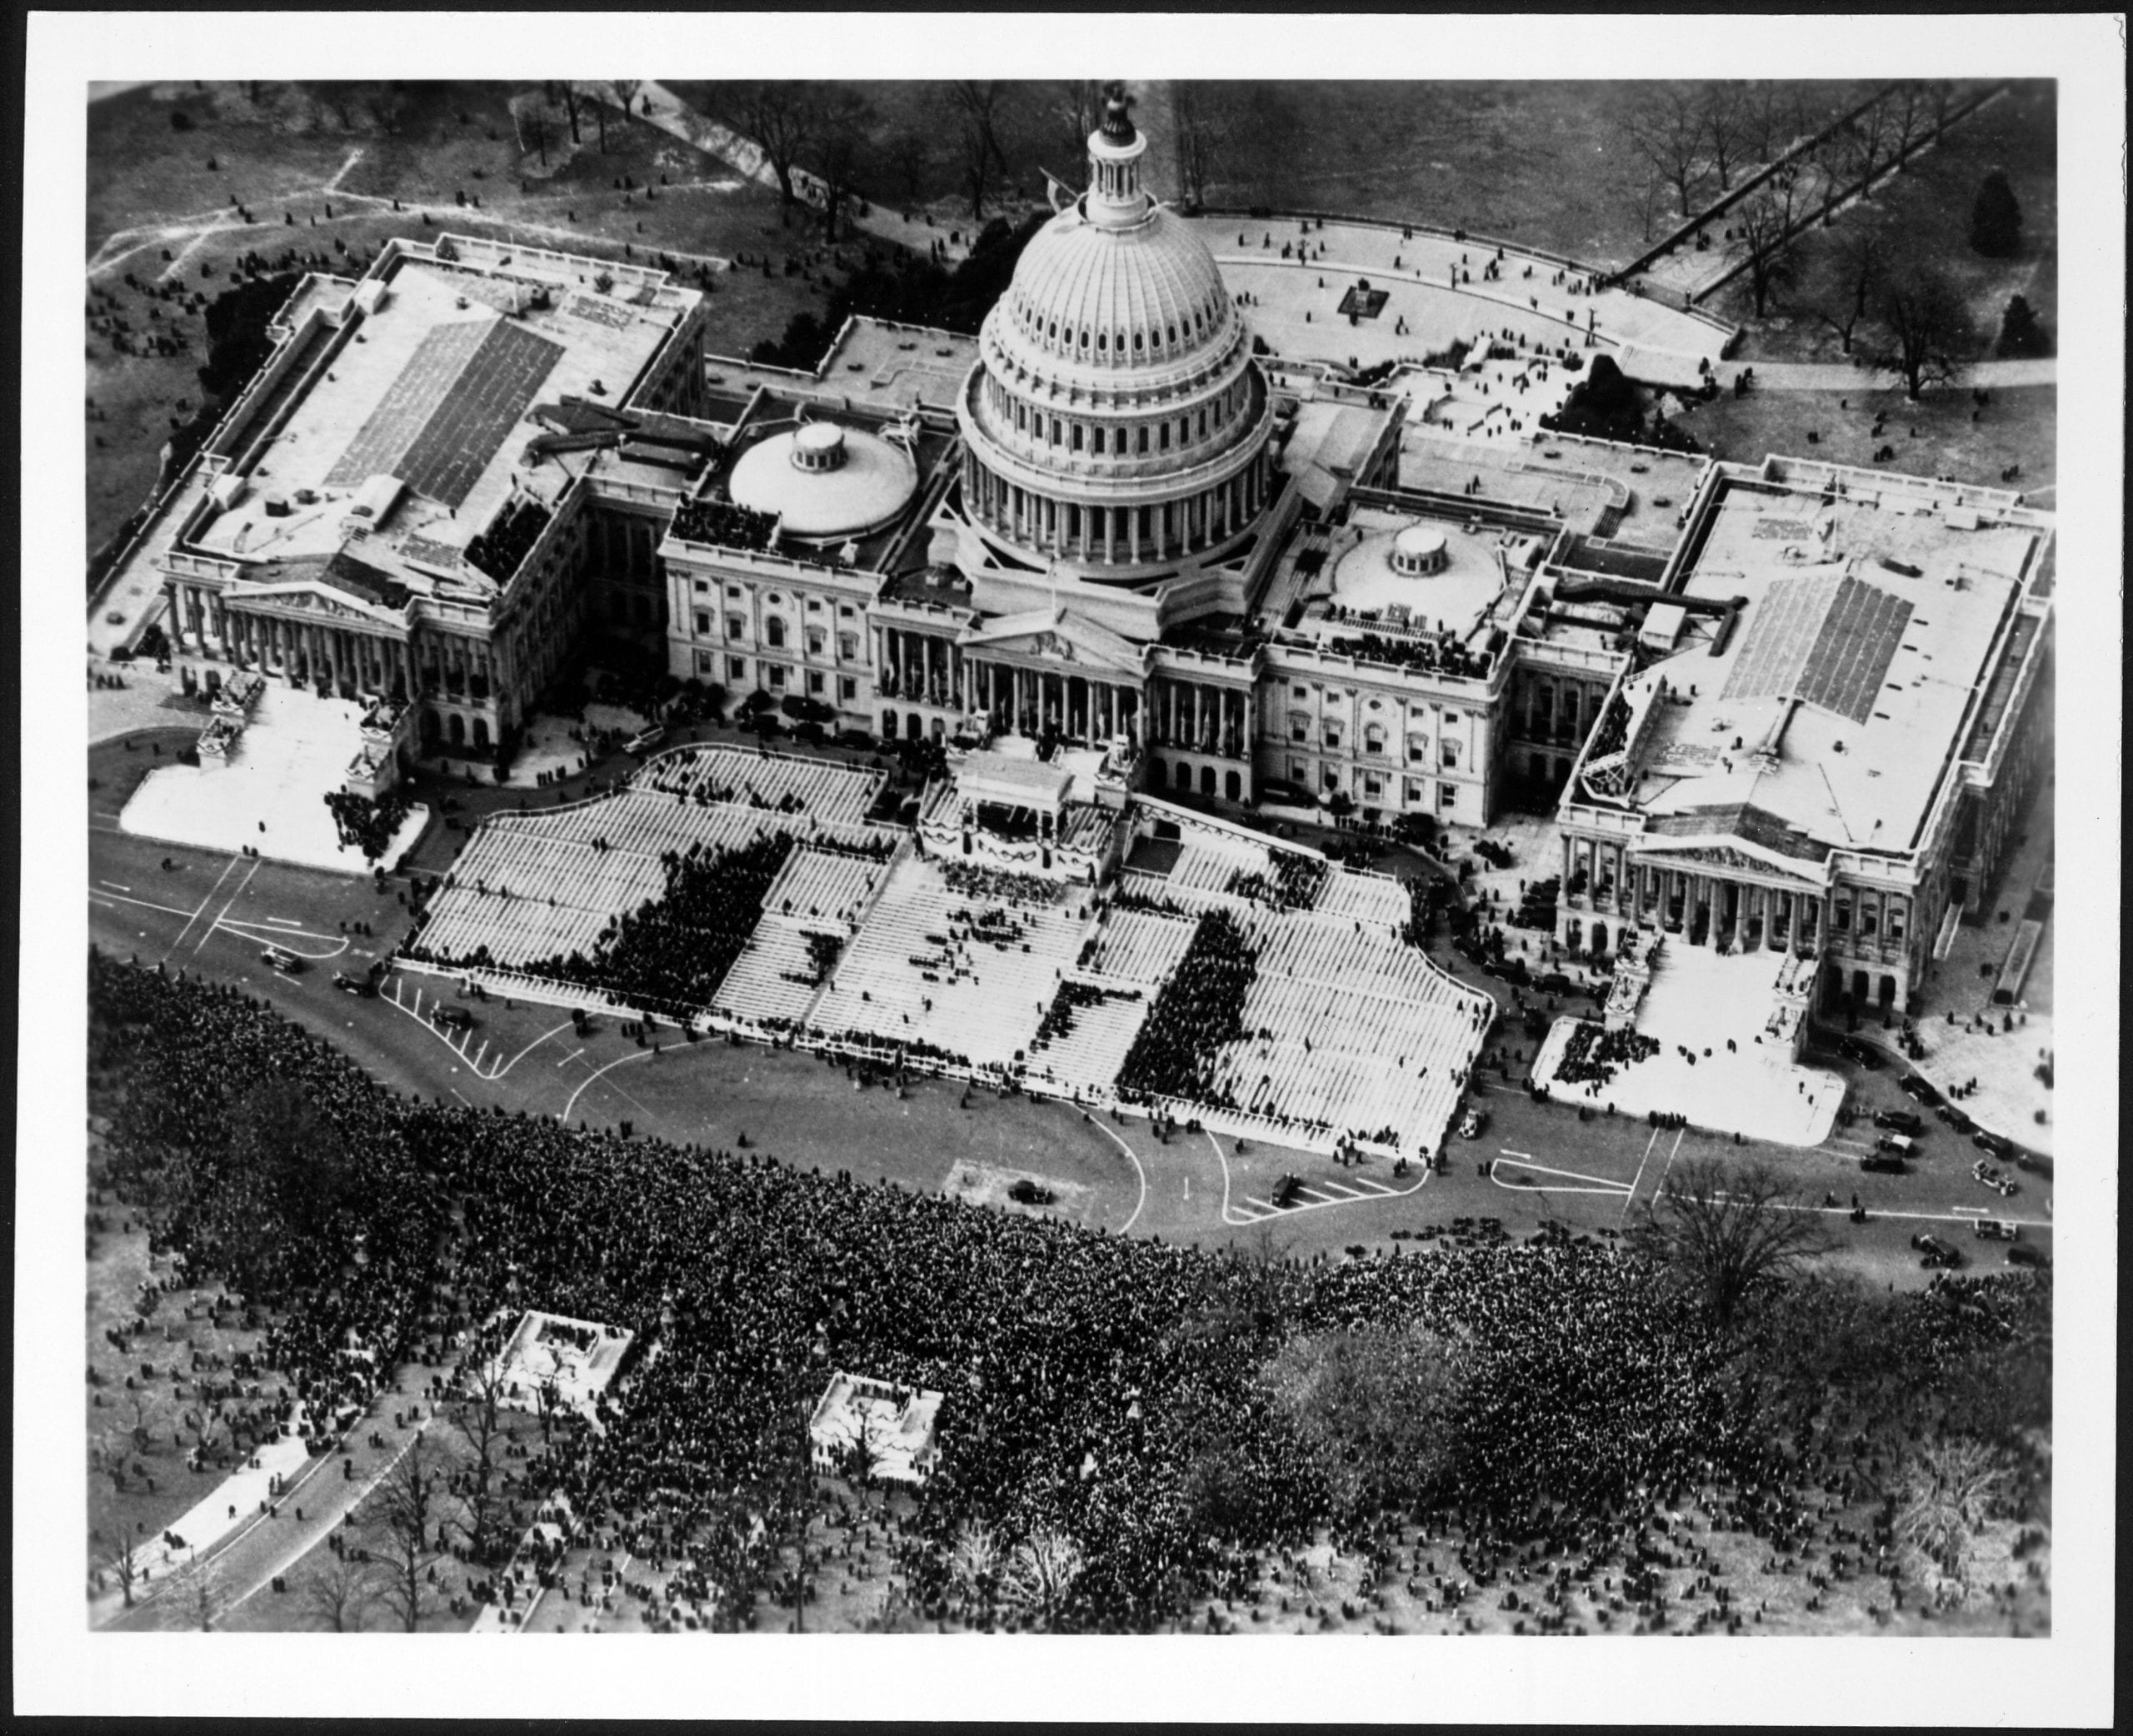 Aerial View of Franklin Roosevelt's First Inauguration